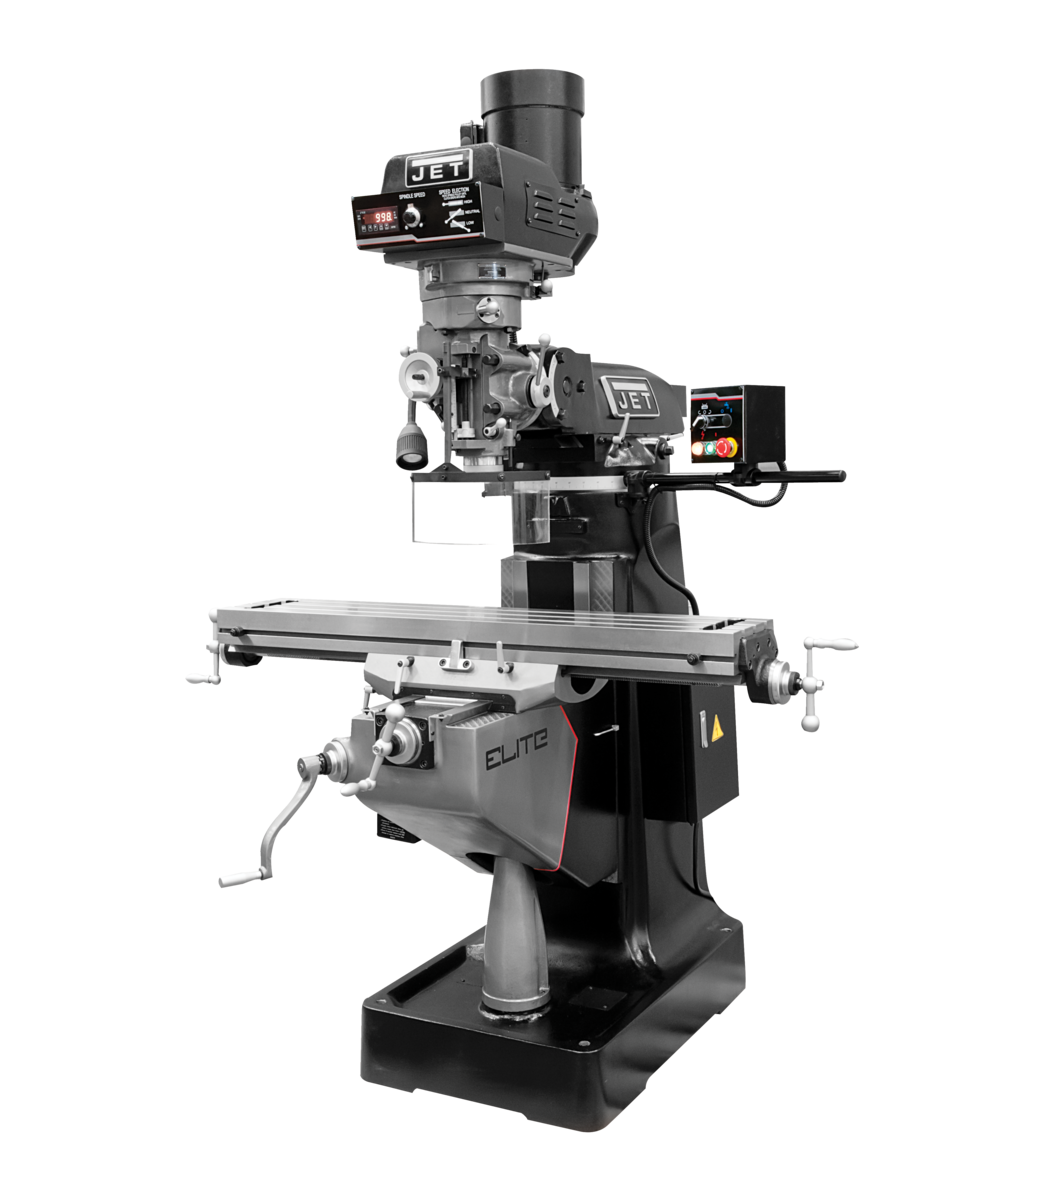 EVS-949 Mill with 3-Axis Newall DP700 (Quill) DRO and X-Axis JET Powerfeed and USA Made Air Draw Bar